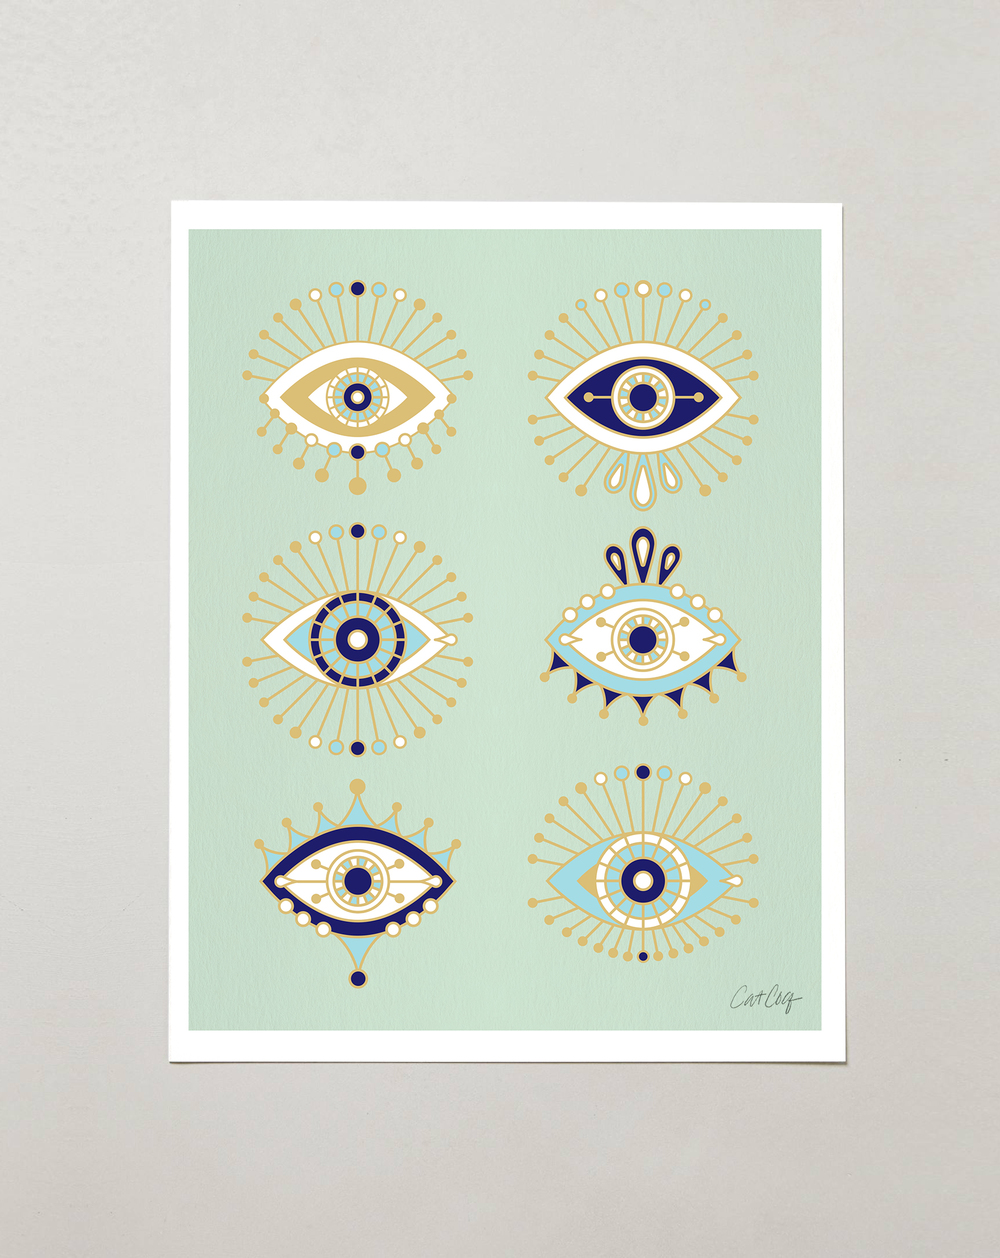 Mint Evil Eye Collection art prints available  here .